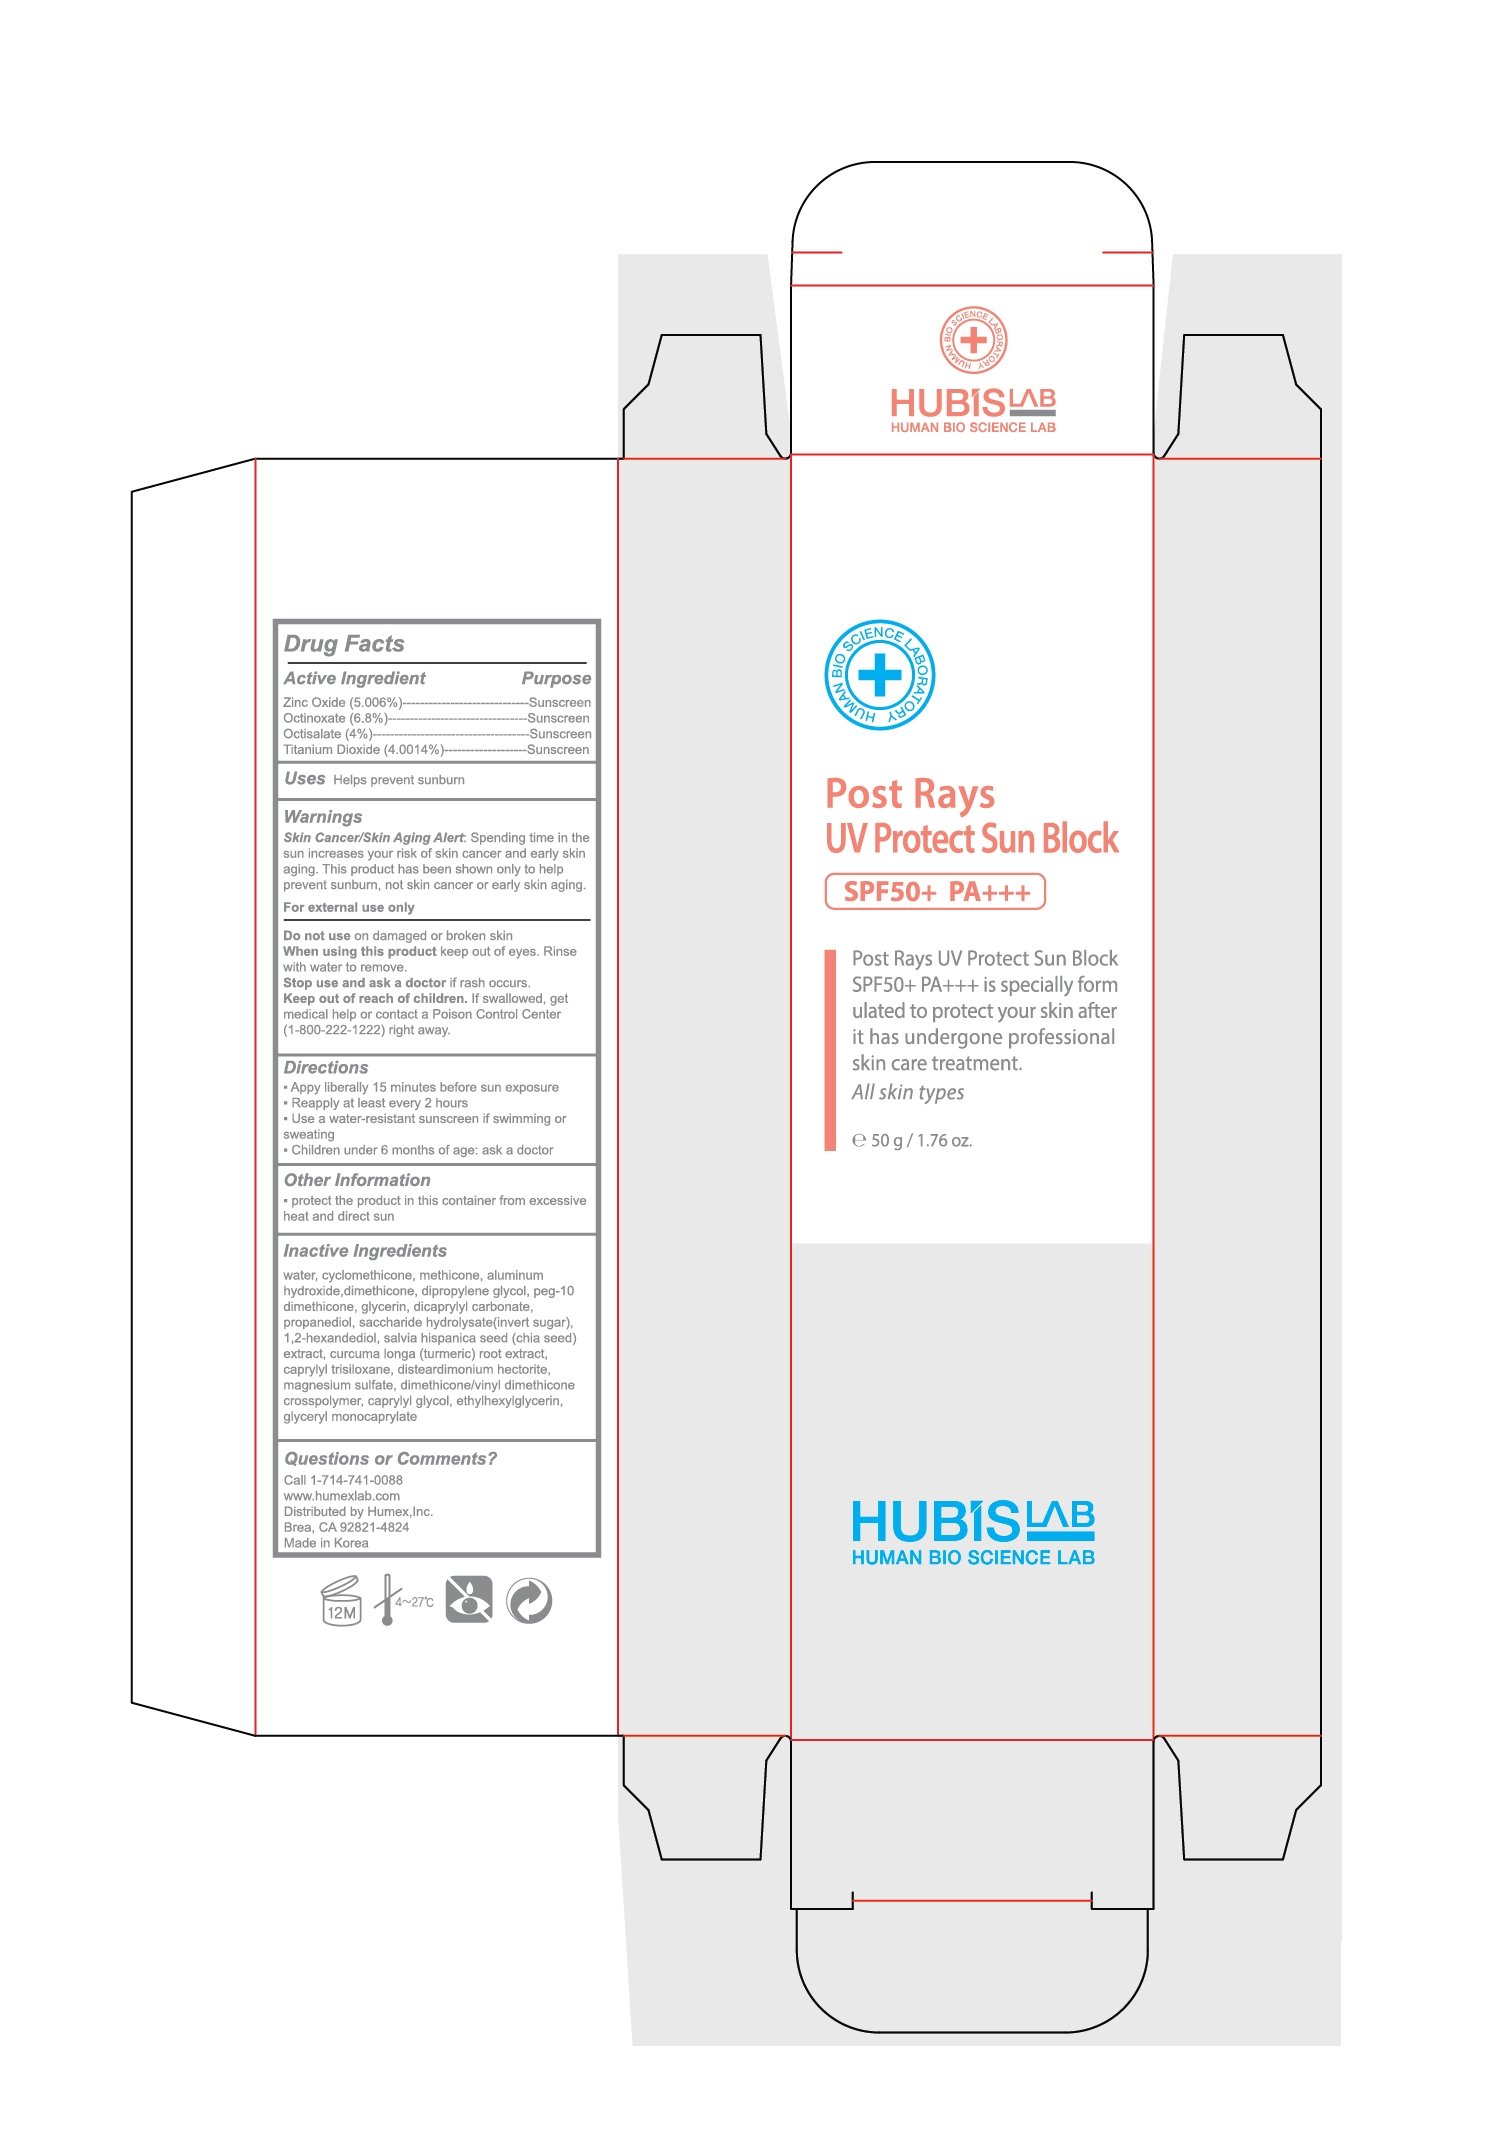 packaging with label in place